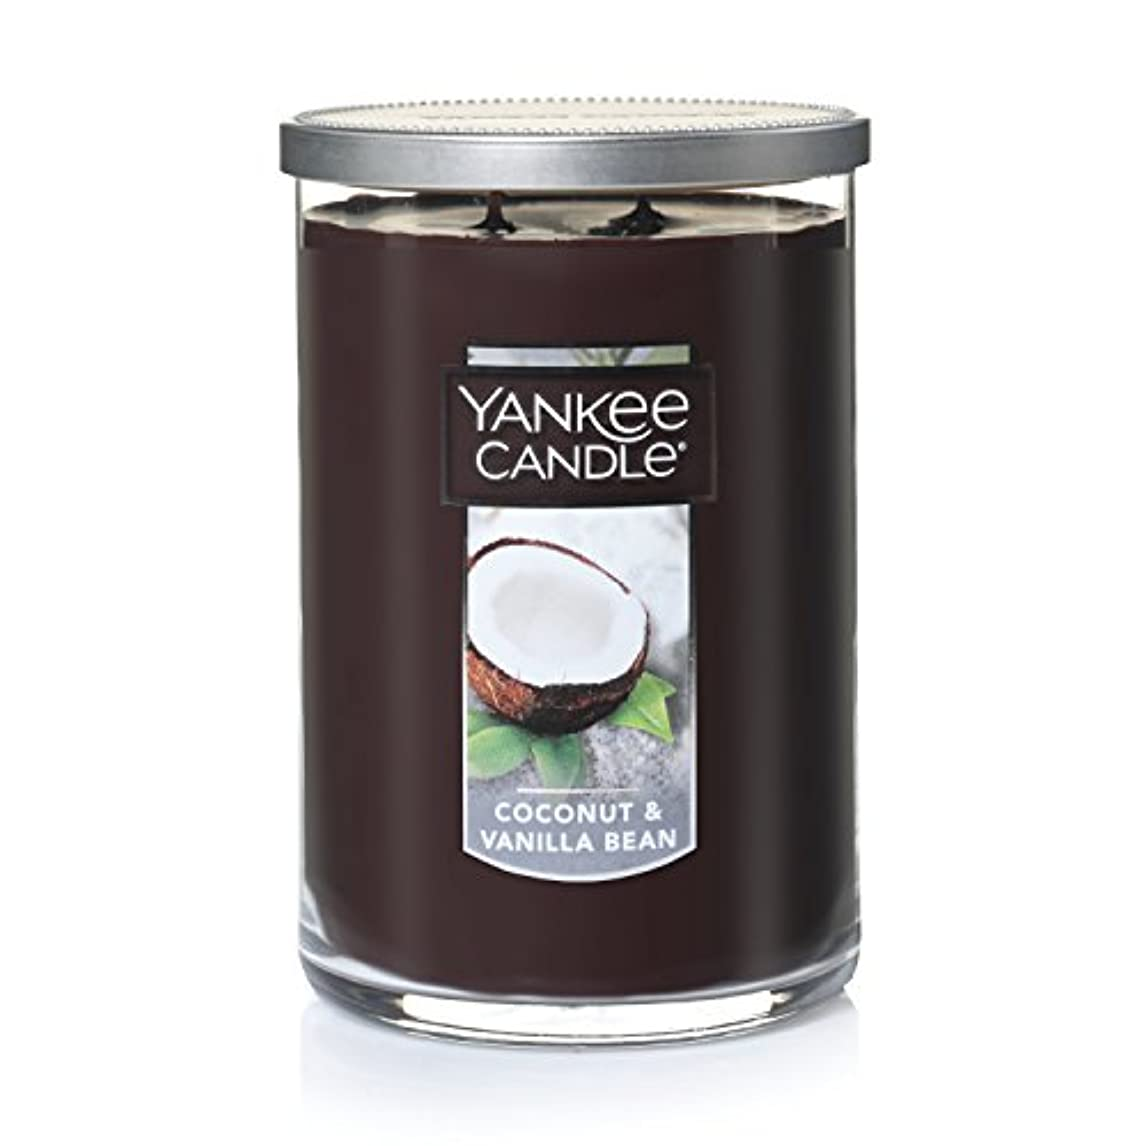 ロープ高潔な飲料Yankee Candle Coconut & Vanilla Bean , Food & Spice香り Large 2-Wick Tumbler Candle ブラウン 1284535-YC